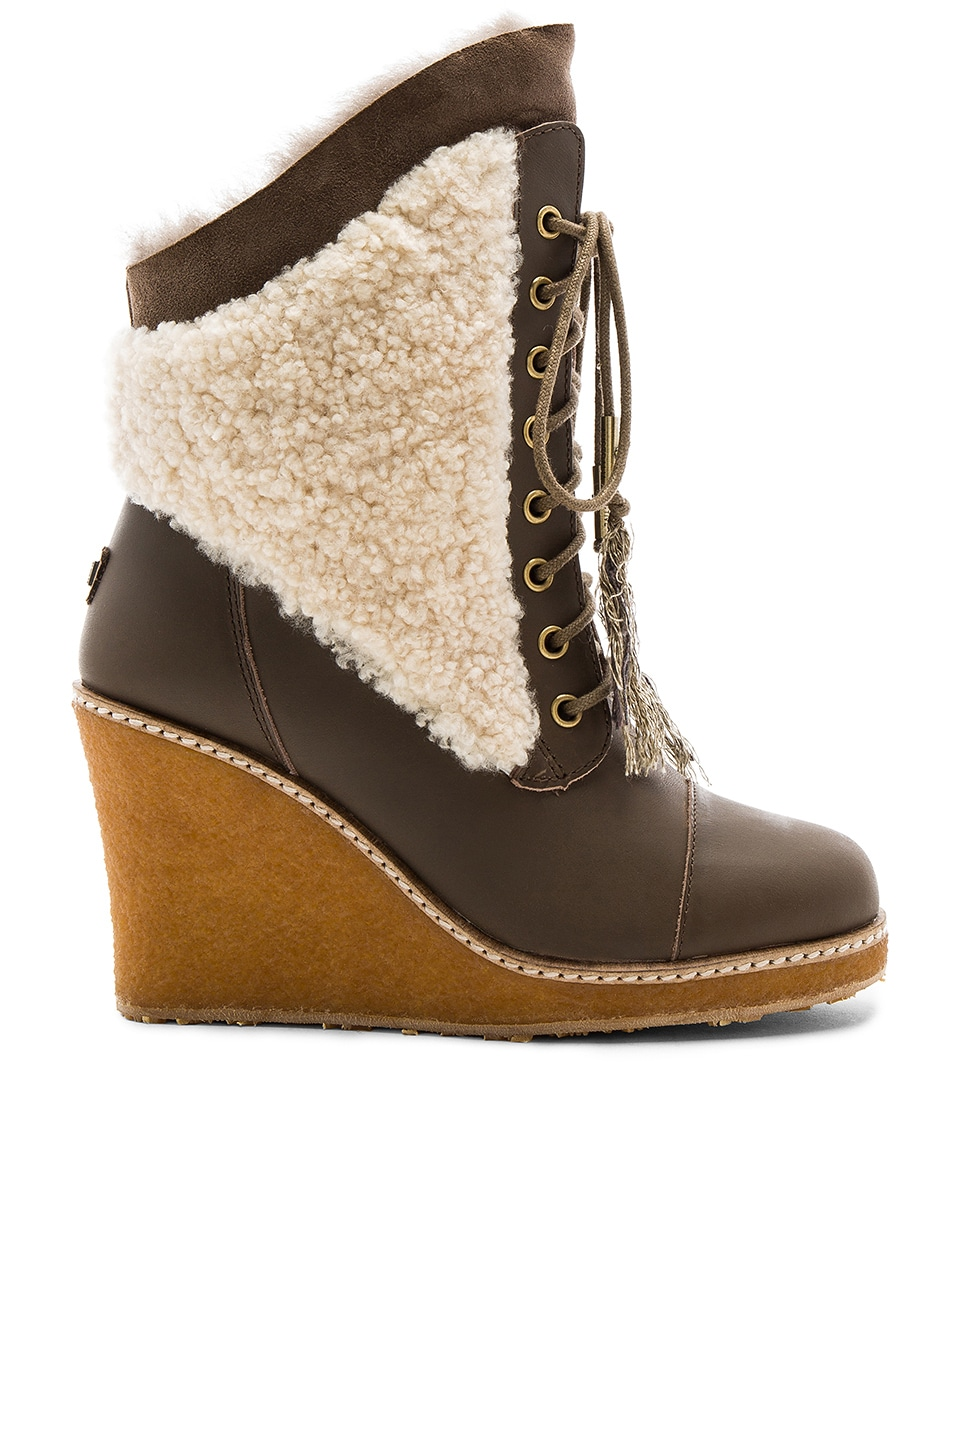 11dae5322c82 Ugg Australia Luxe Collection